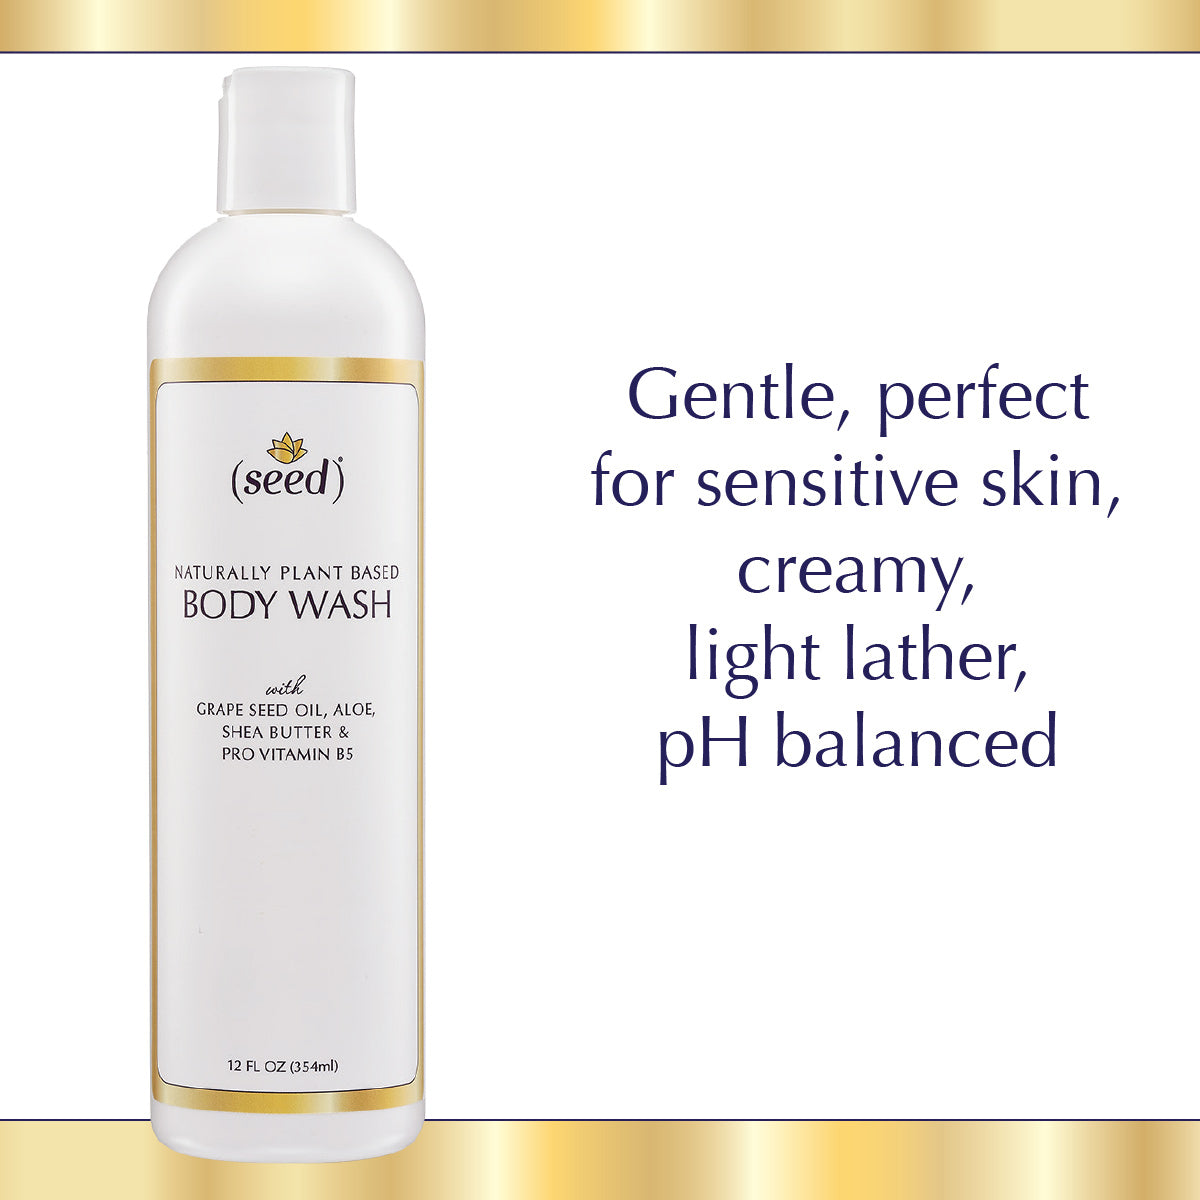 Seed Body Wash is gentle for sensitive skin with light lather and pH balanced